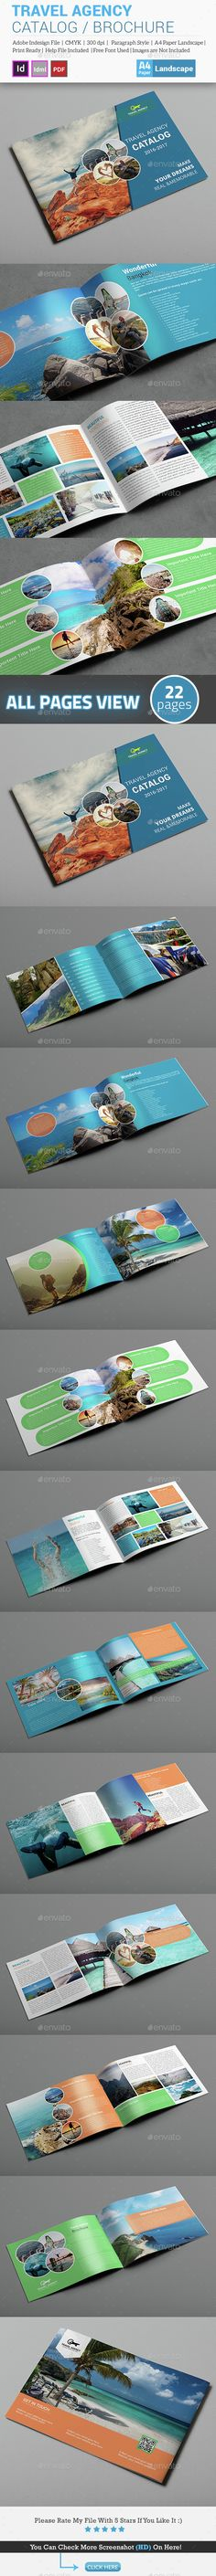 Travel Agency Brochure / Catalog Template InDesign INDD. Download here: http://graphicriver.net/item/travel-agency-brochure-catalog-template/15396648?ref=ksioks